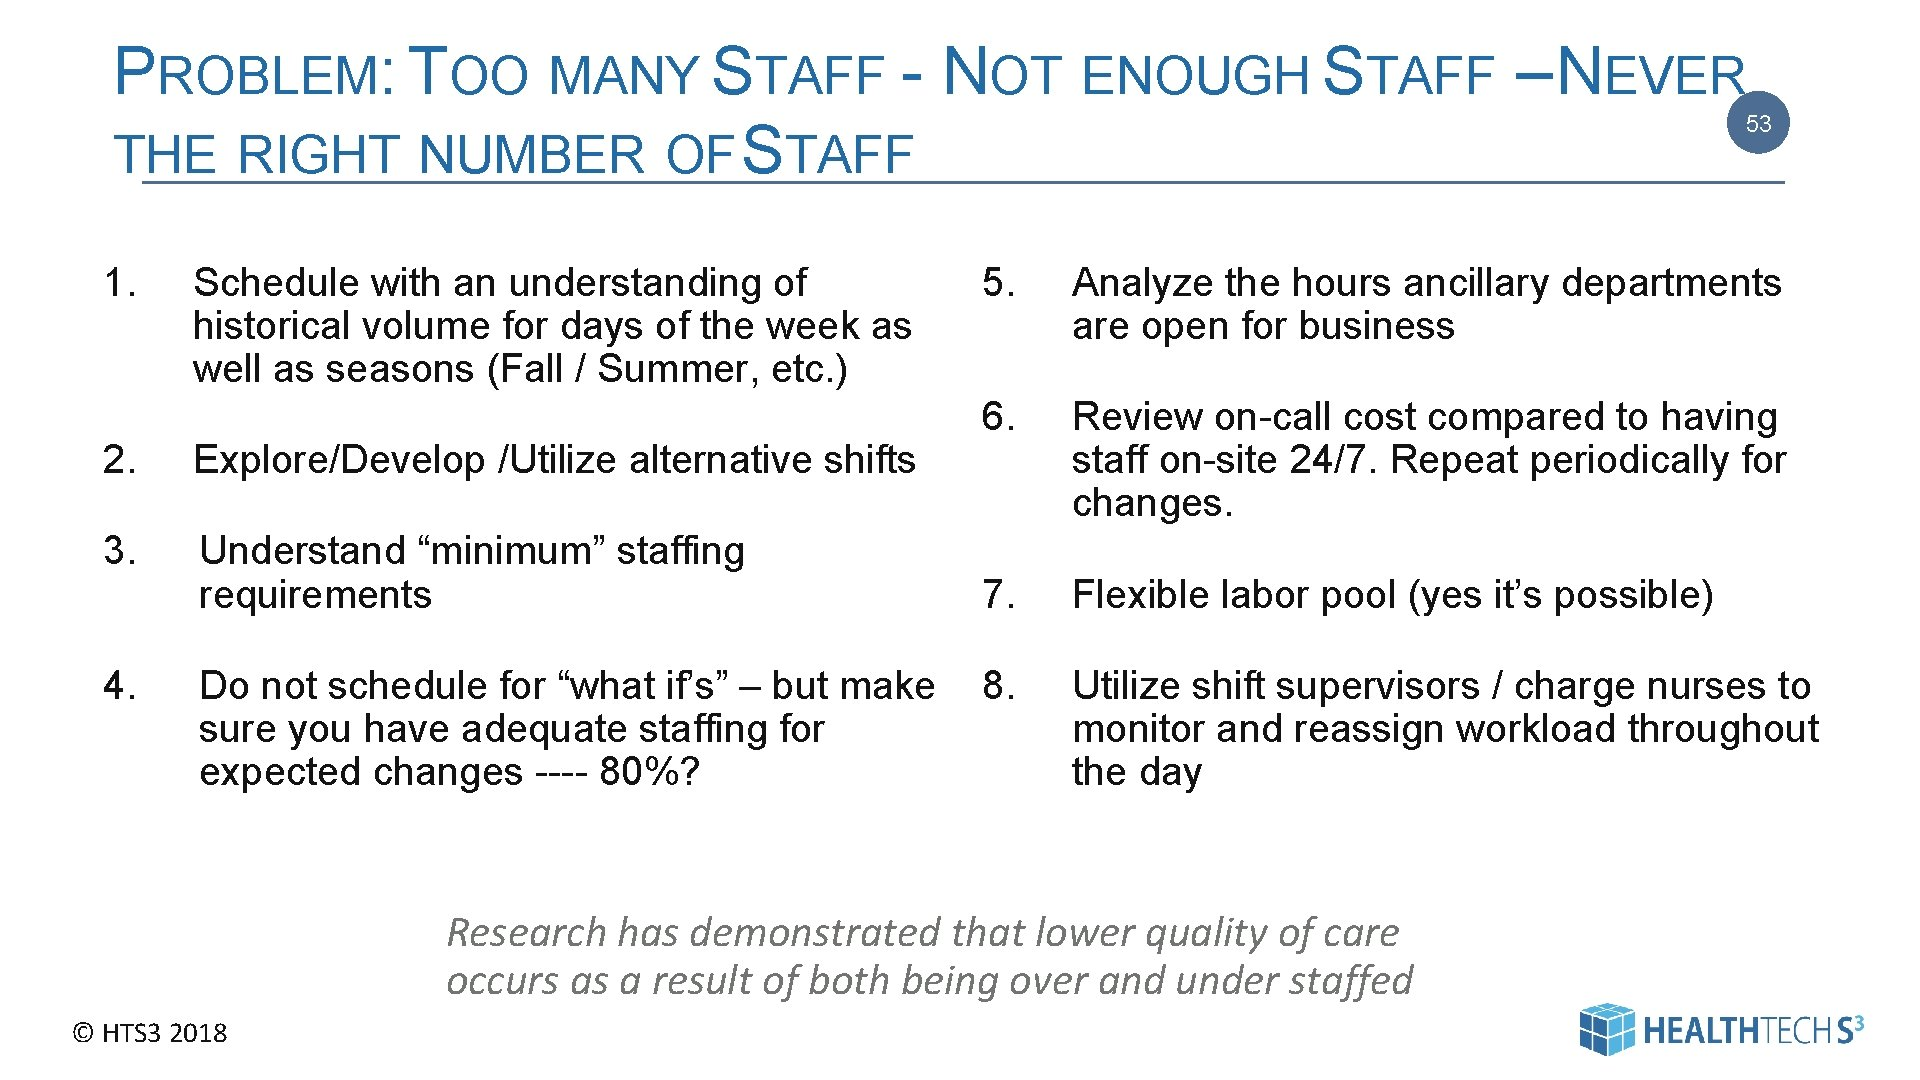 PROBLEM: TOO MANY STAFF - NOT ENOUGH STAFF – NEVER THE RIGHT NUMBER OF